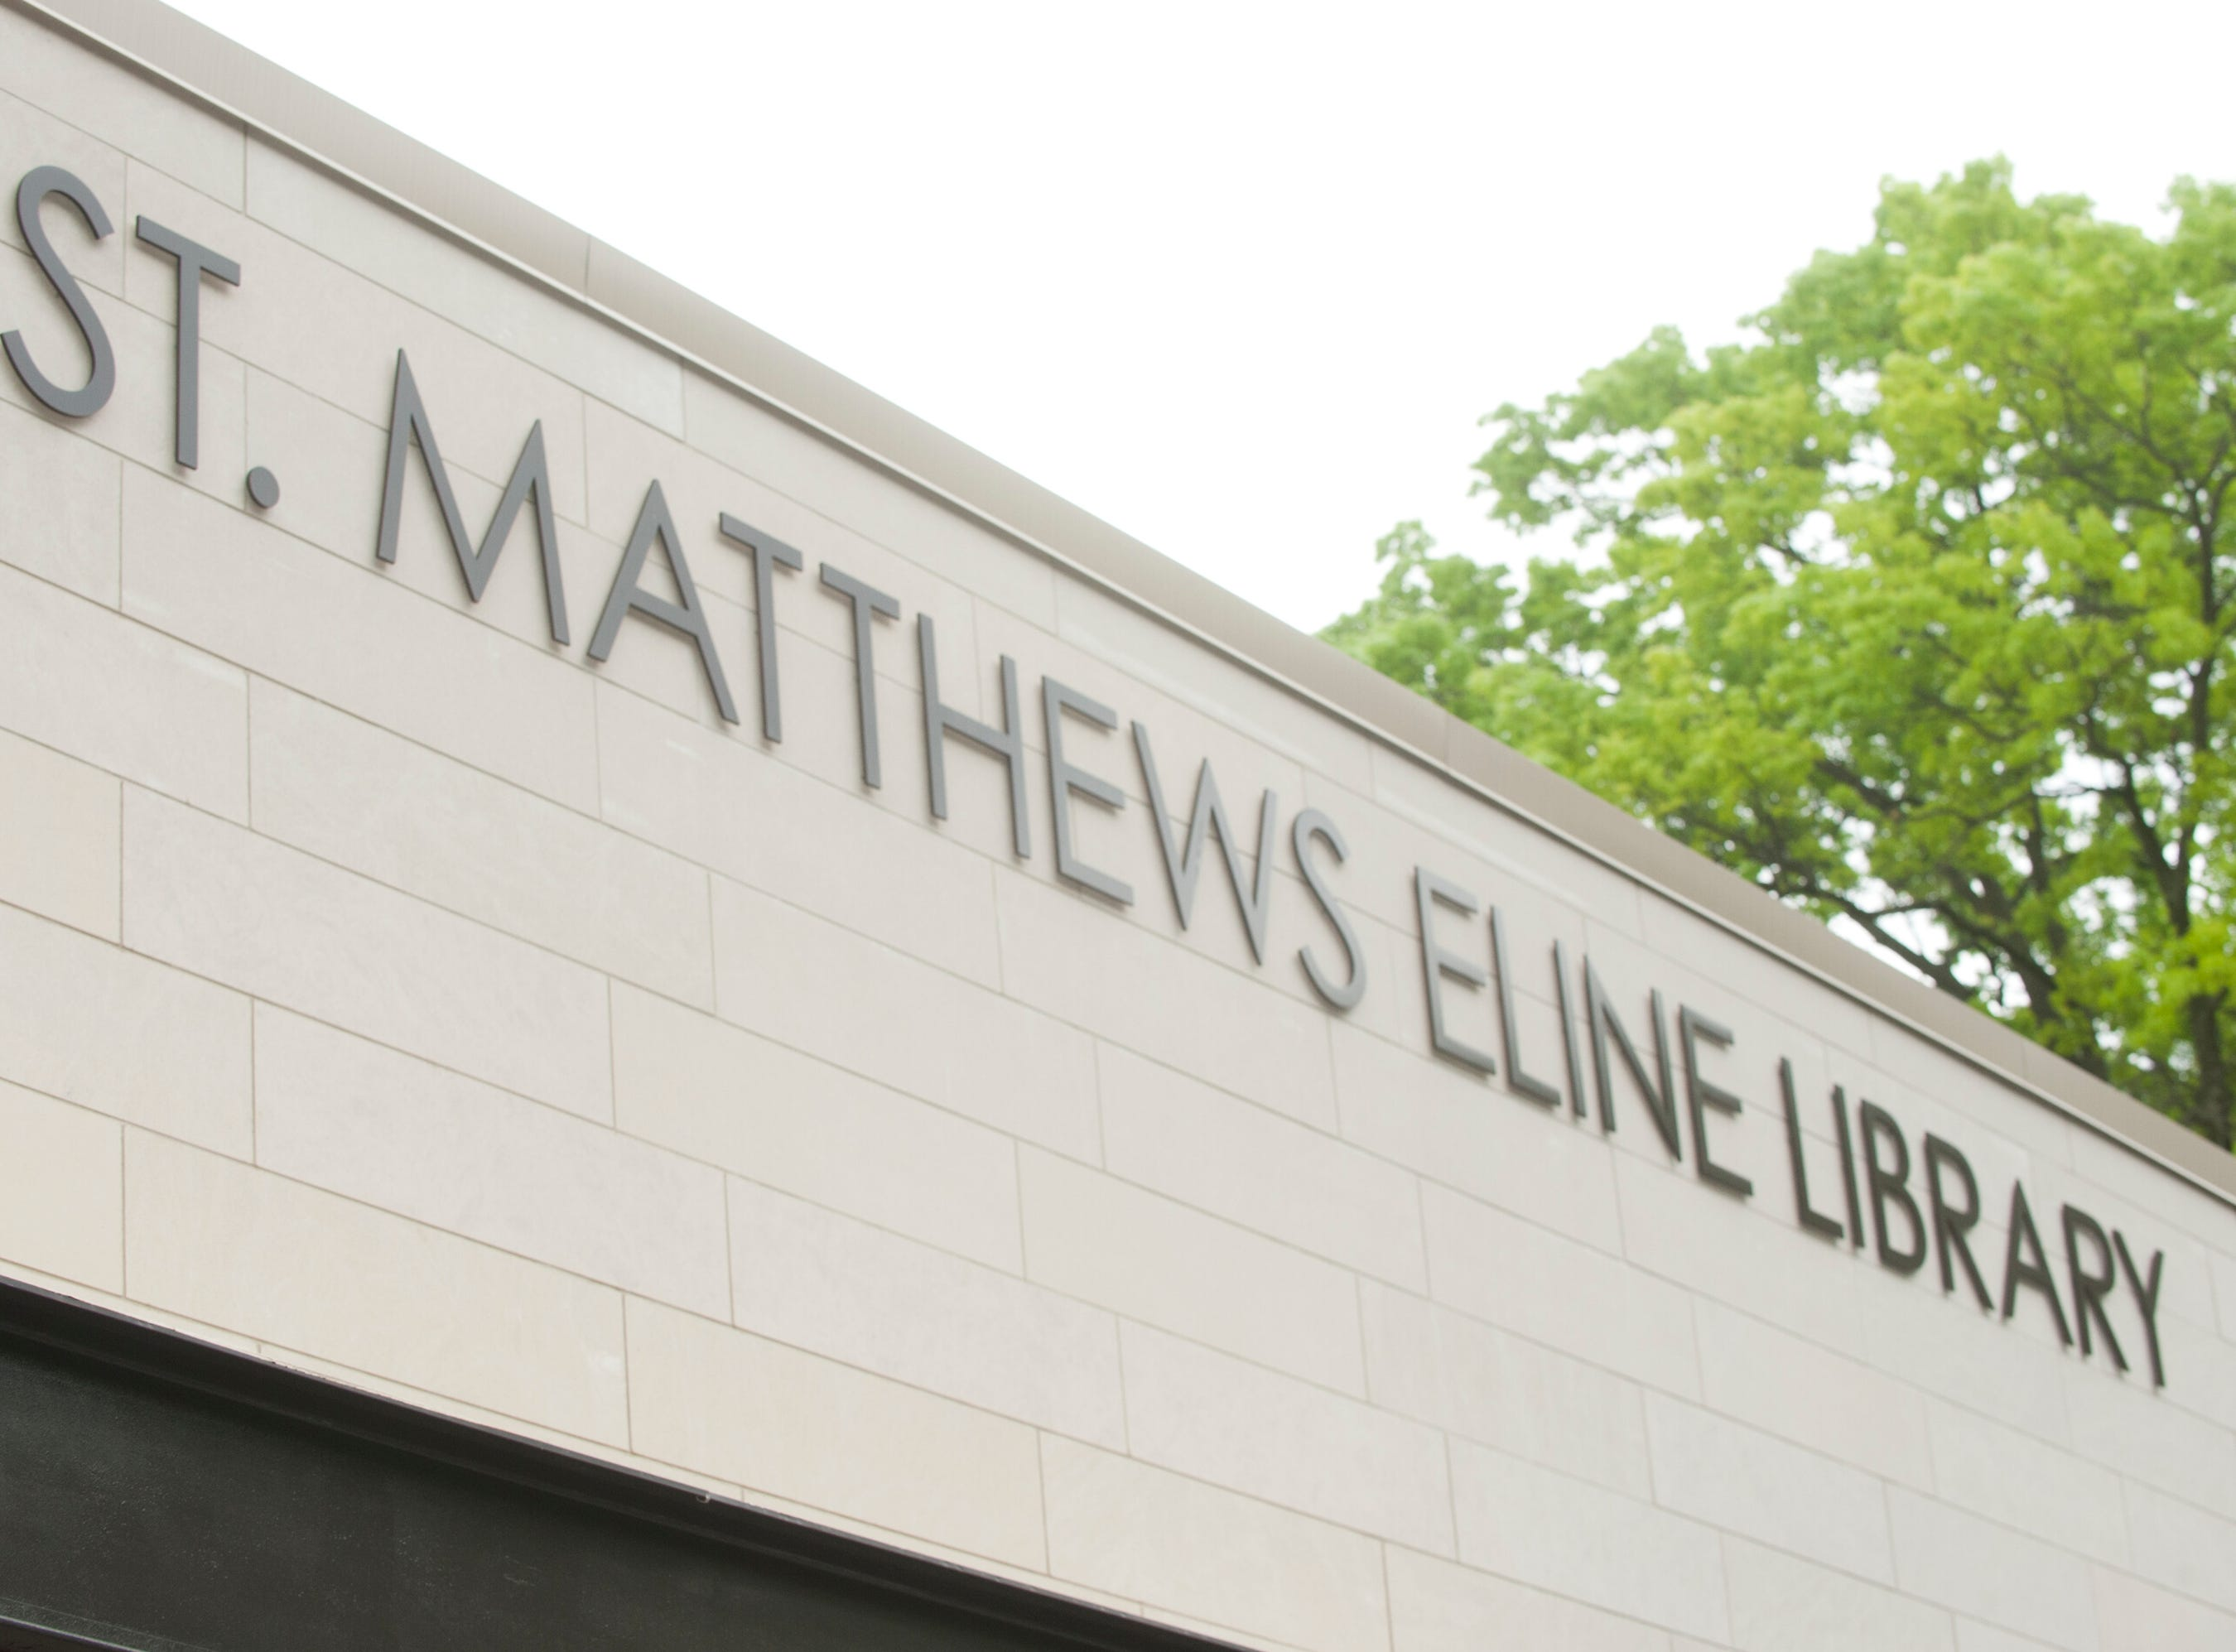 The new edition of the St. Matthews Eline Library adds 7,800 additional square feet to the library, for a total of 19,000 square feet. It is the busiest library in the Louisville Free Public Library system according to Lee Burchfield, the LFPL's executive director. May 9, 2019